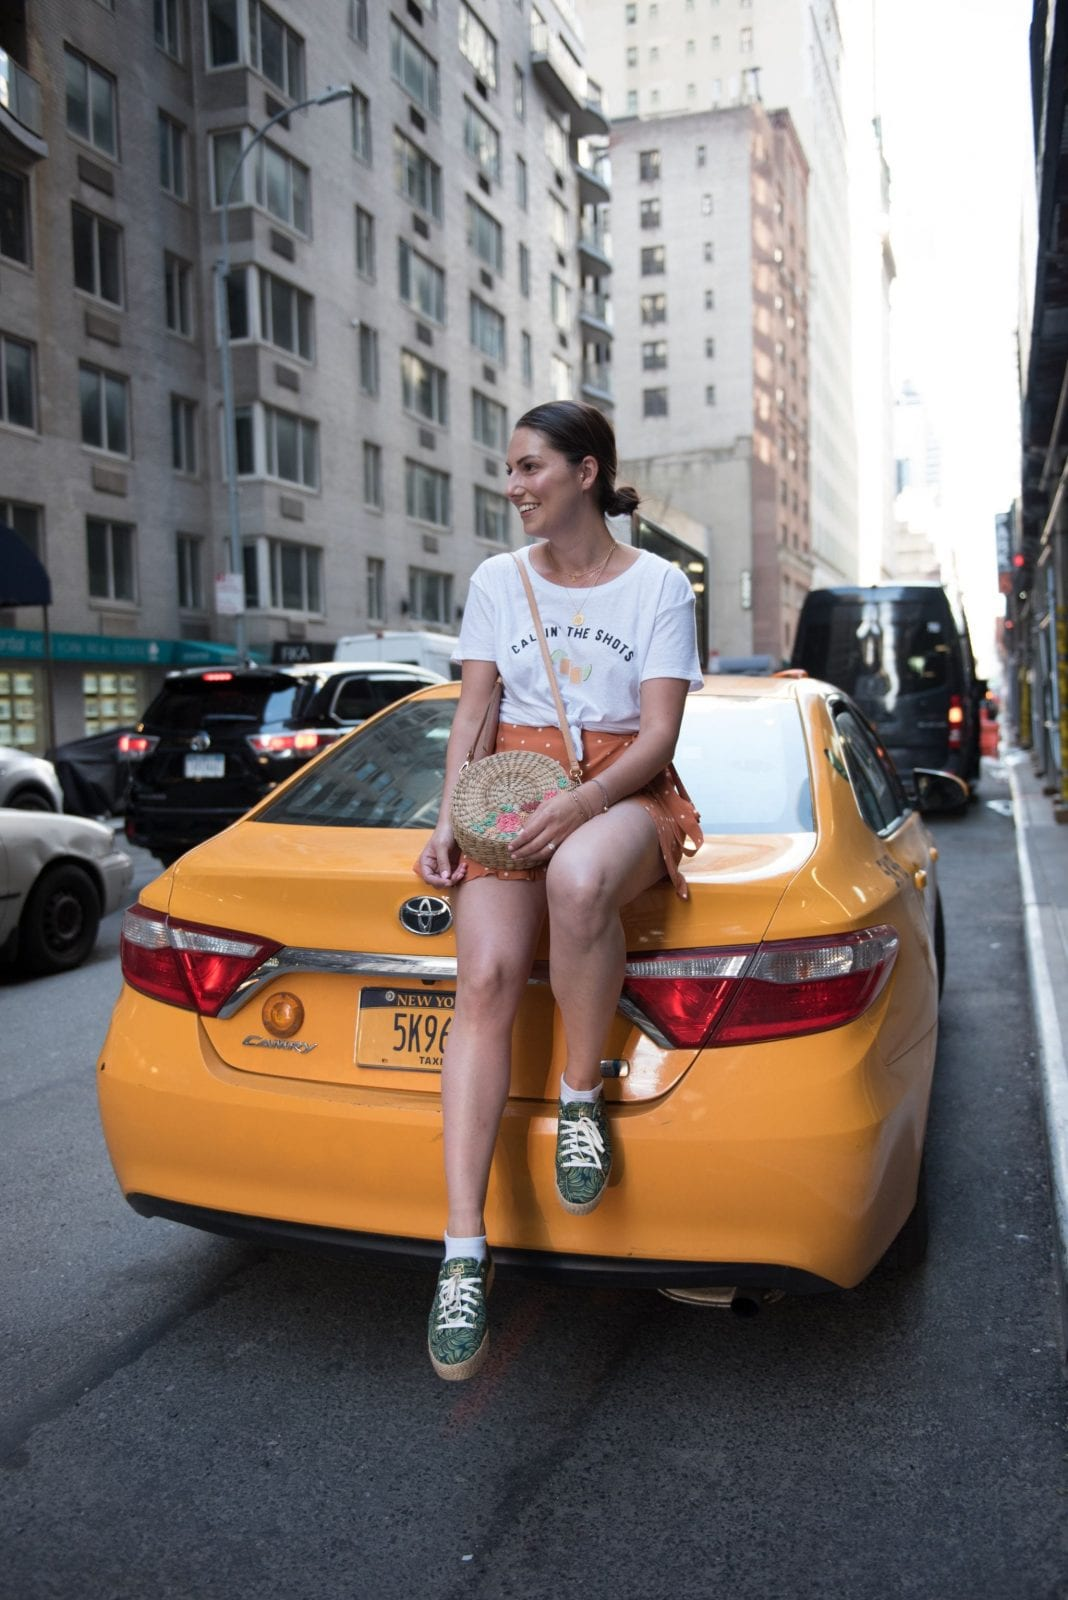 This is a photo of me sitting on a yellow taxi cab in New York City.